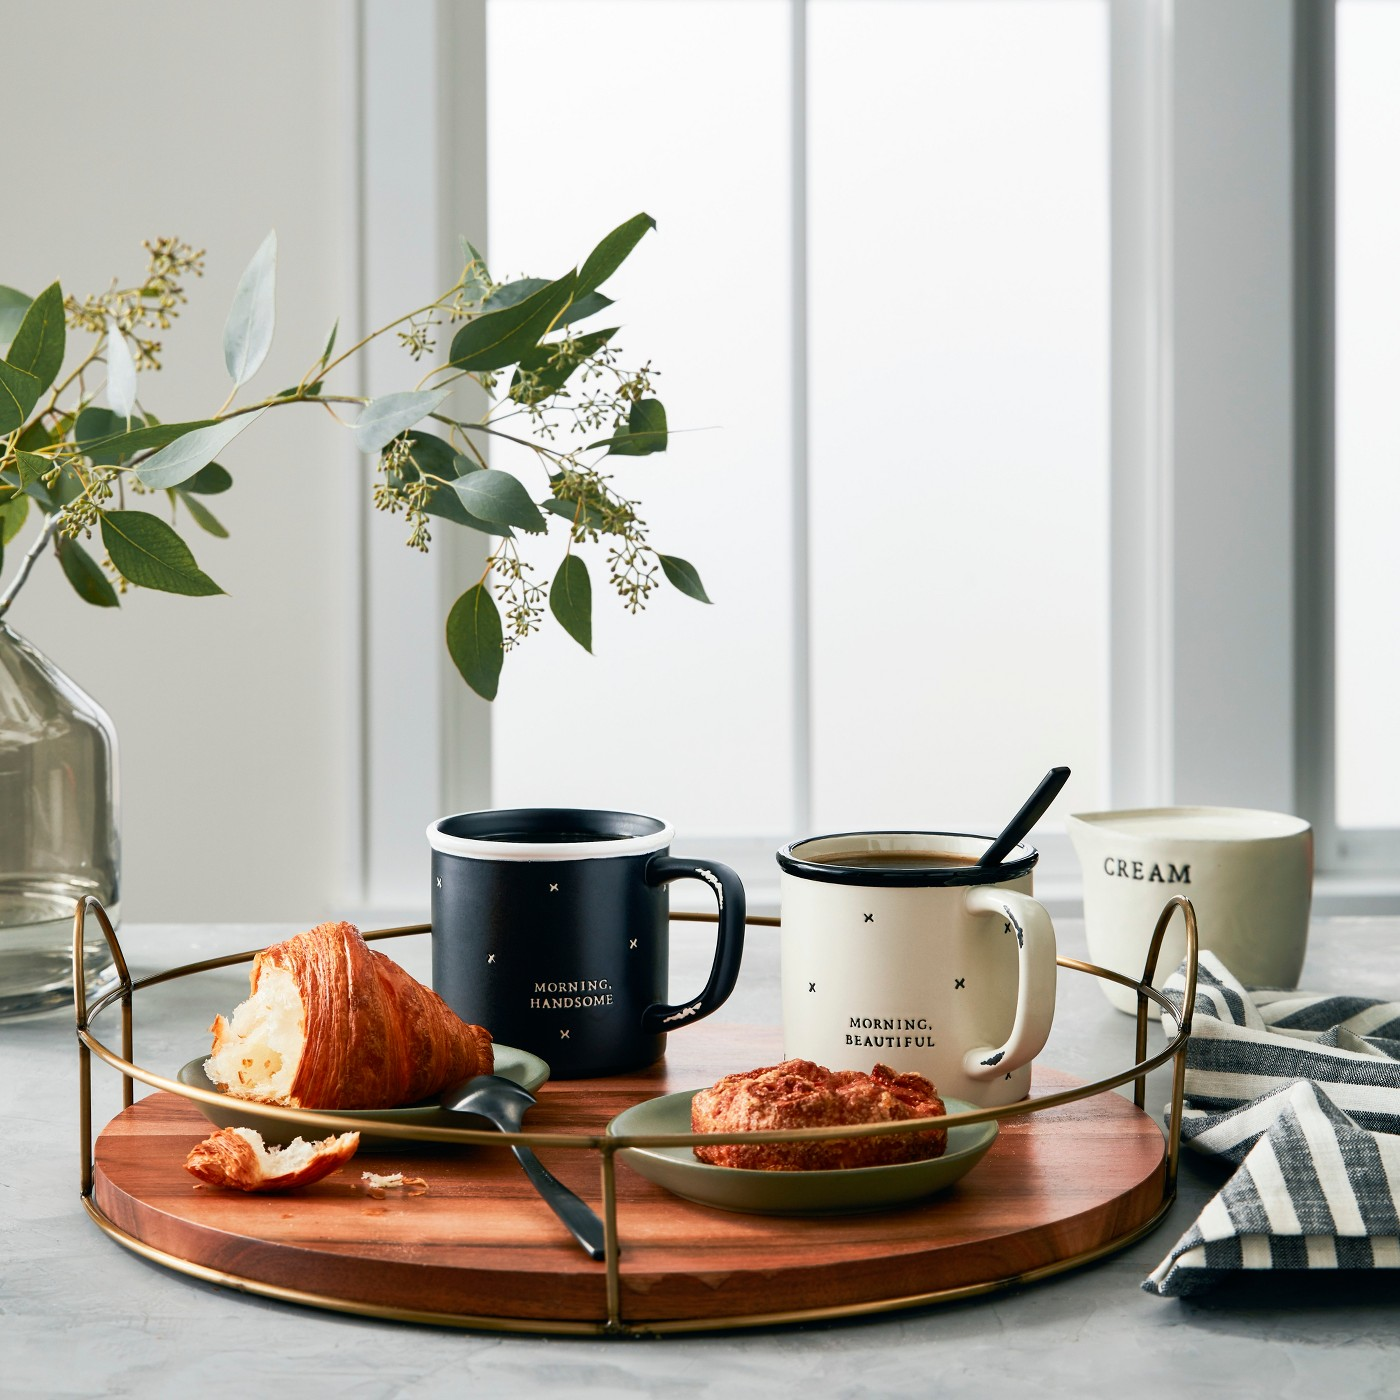 Joanna Gaines Target Fall Collection, wood and wire tray